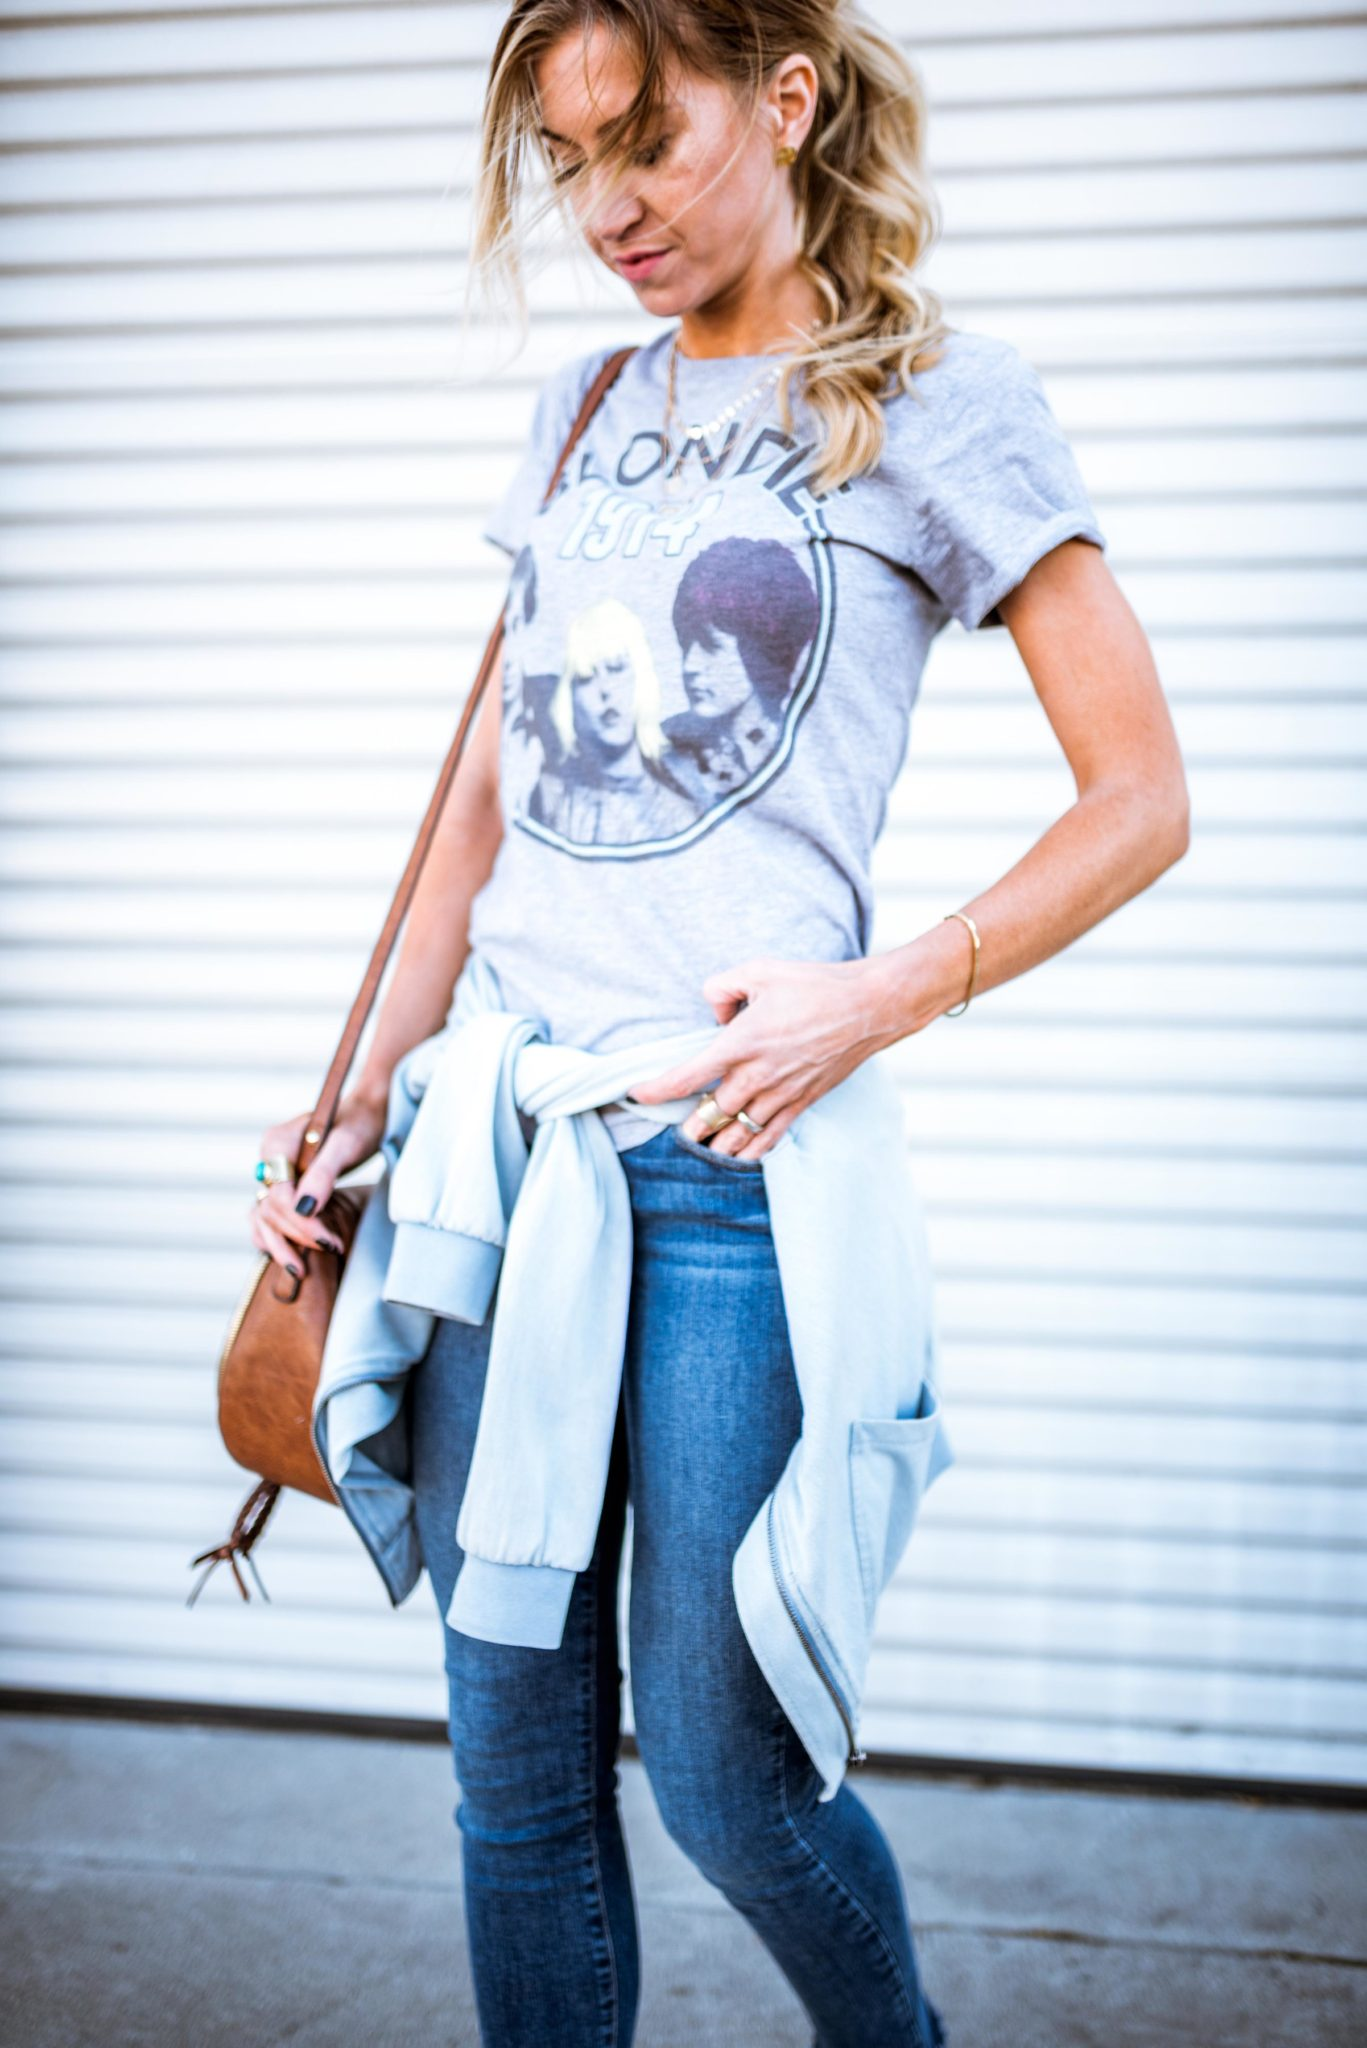 Blondie graphic tee, distressed jeans, chambray bomber jacket for spring.